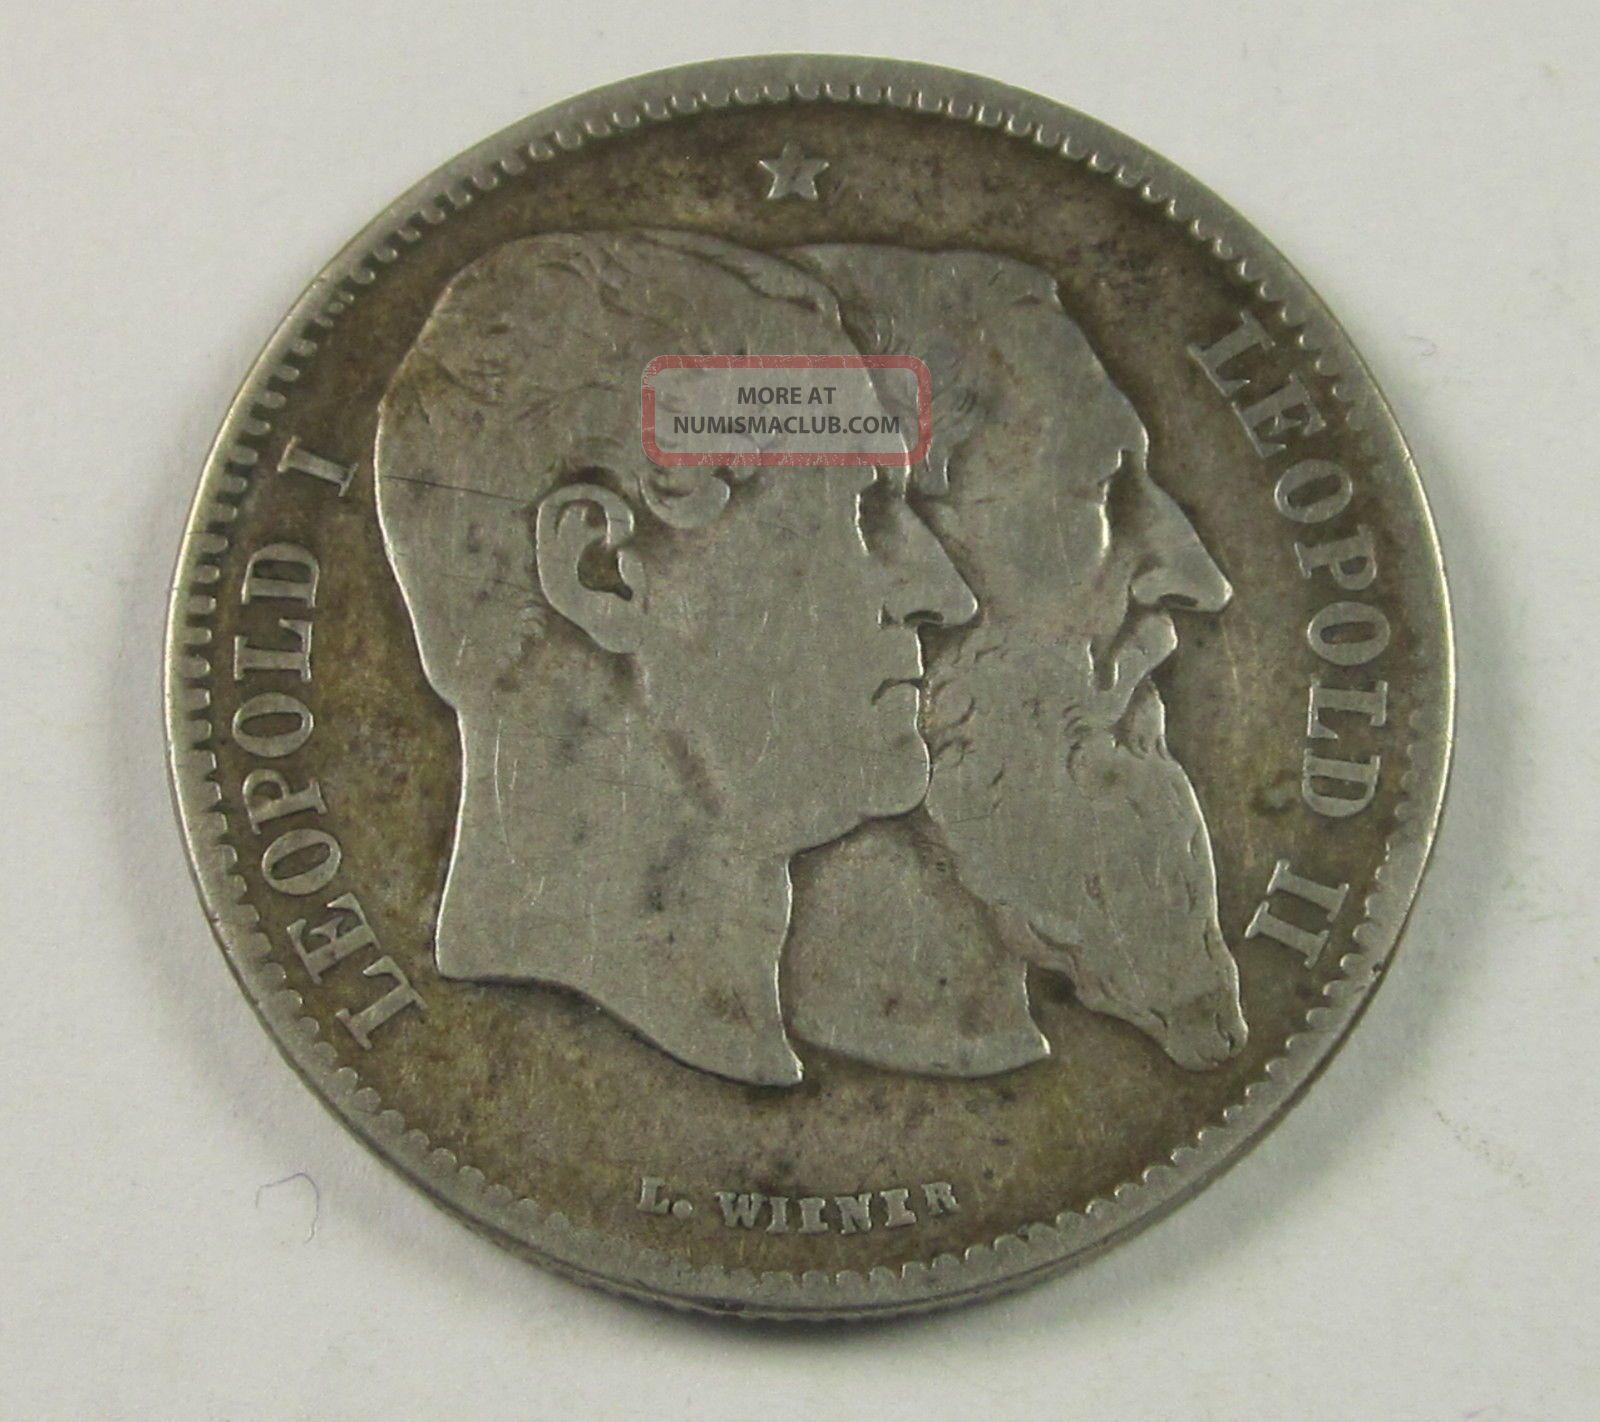 Belgium 2 Francs,  2 Frank,  1880,  50th Anniv.  Of Indepen. ,  Circulated,  Uncertified Belgium photo